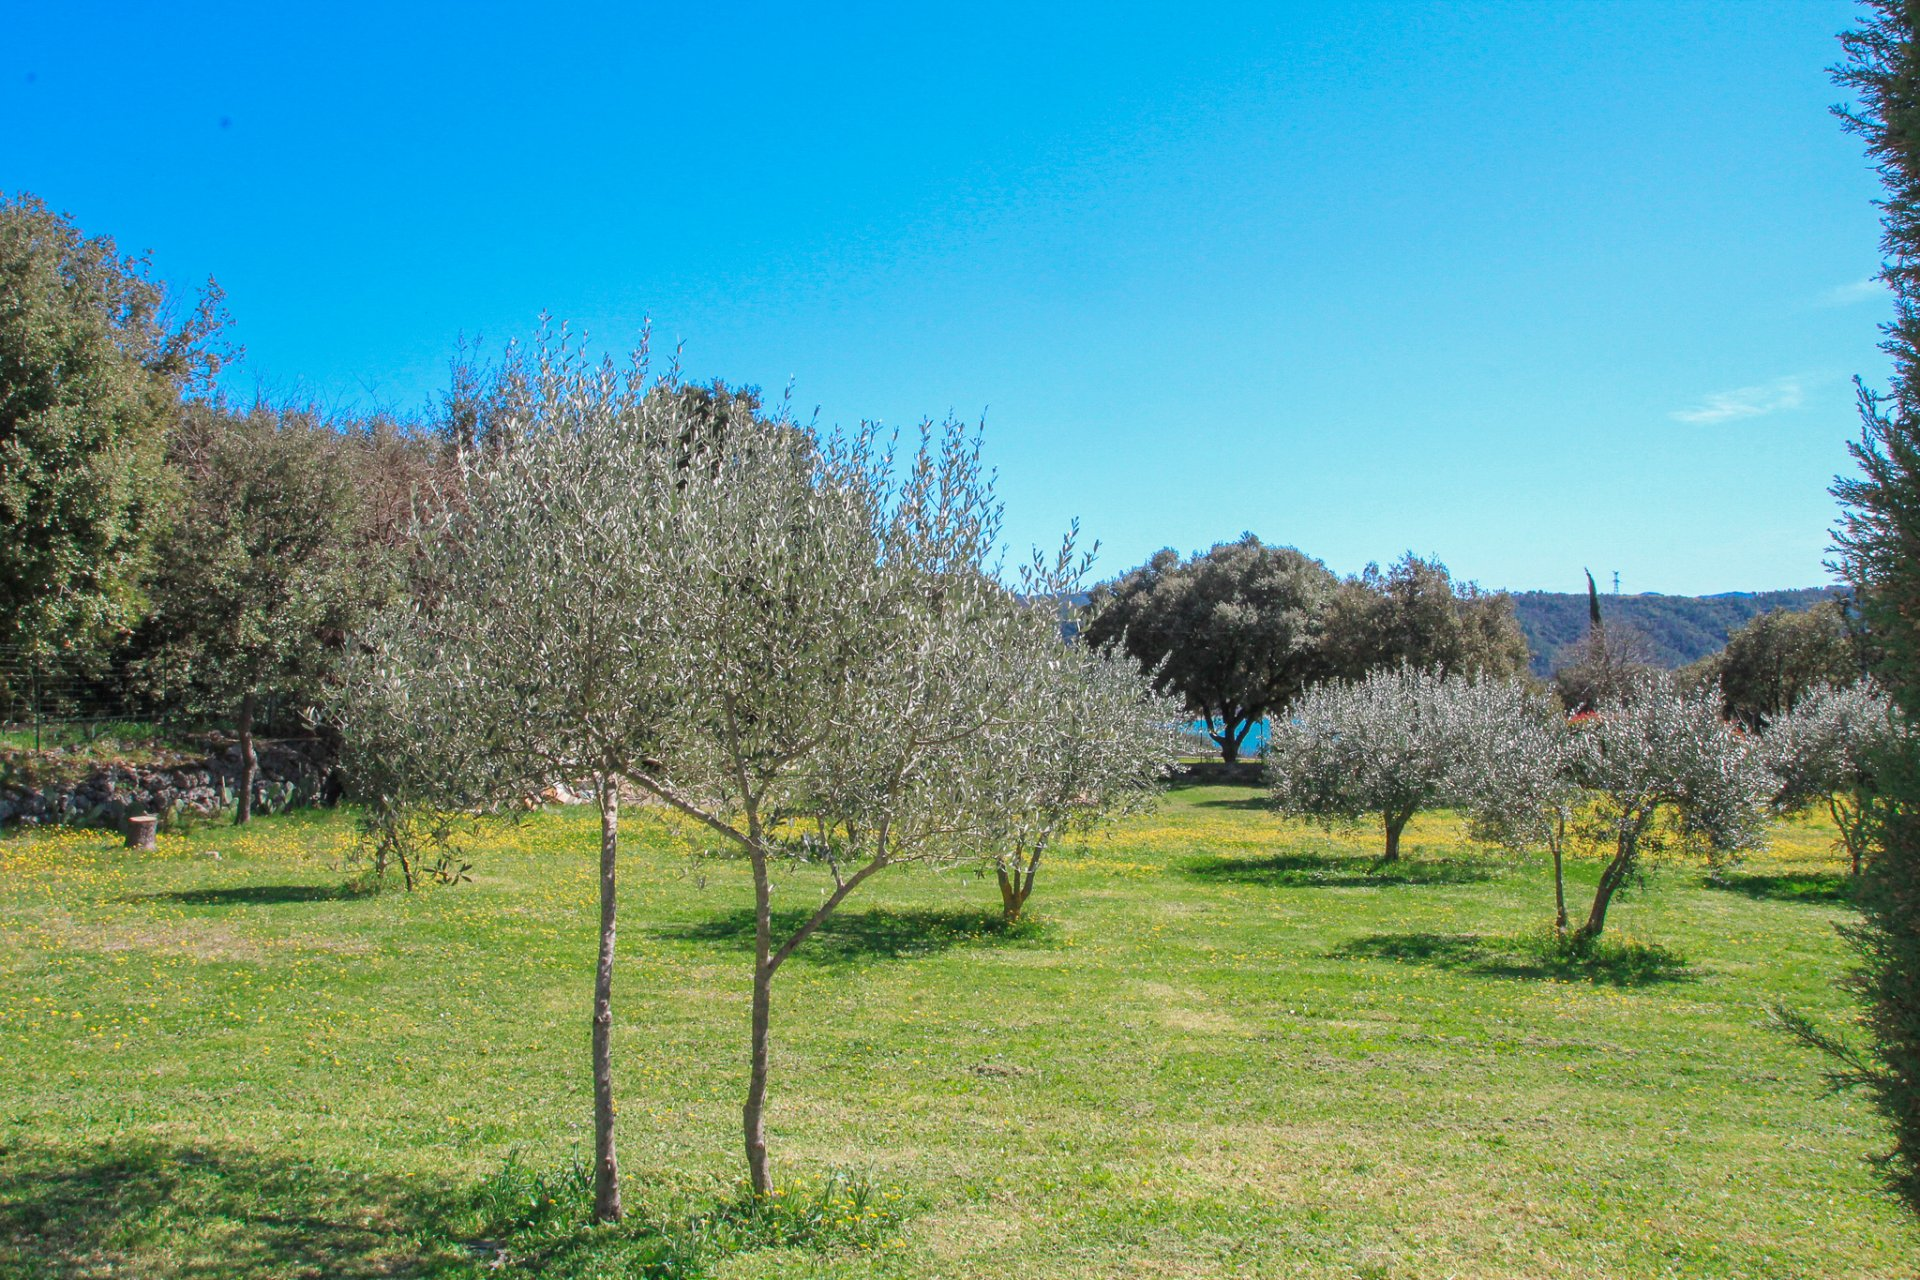 Villa in rural setting amoungst olive trees with view lake